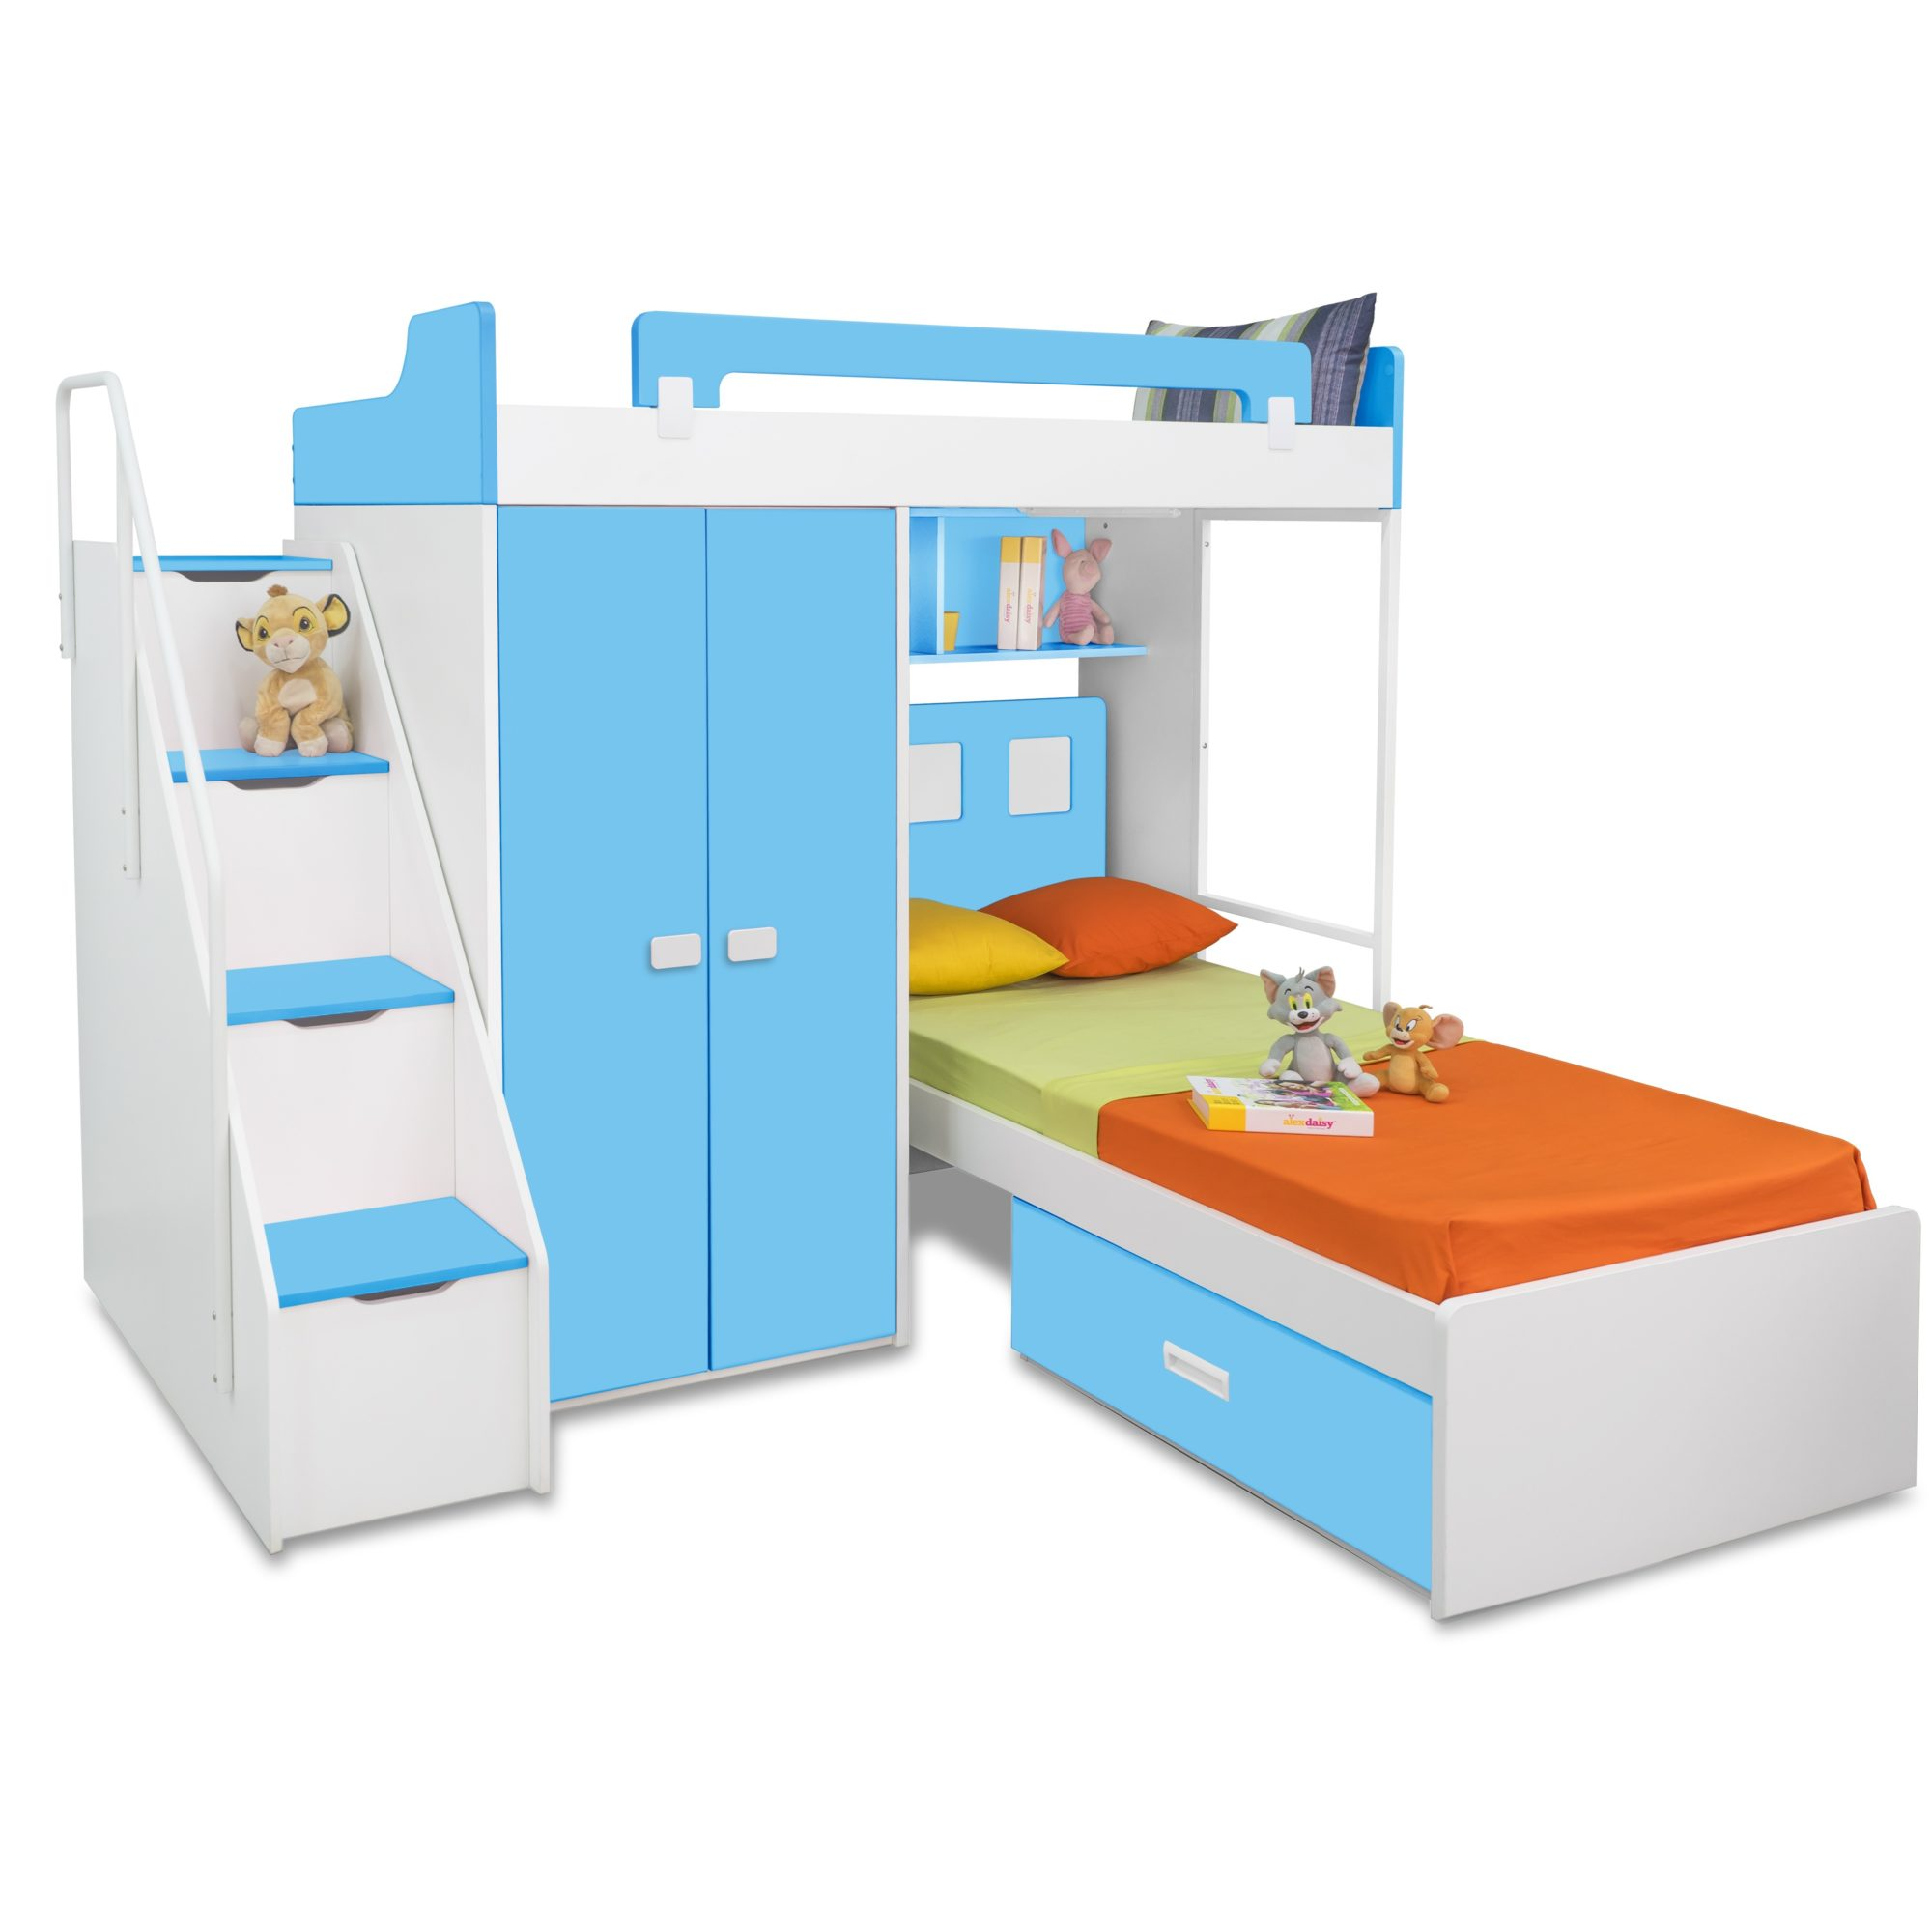 Picture of: The Pros And Cons Of Buying L Shaped Bunk Beds